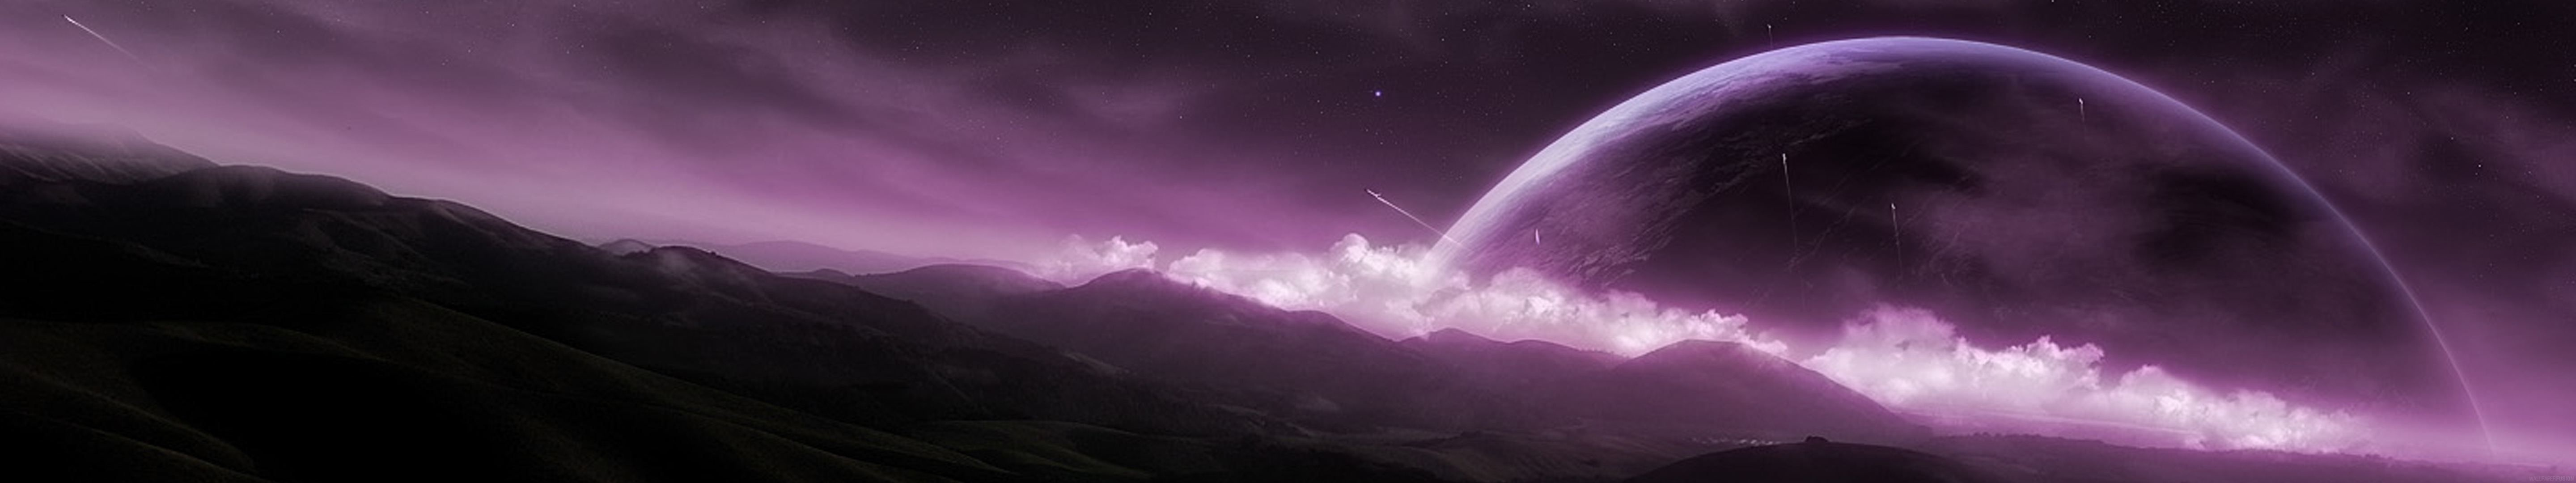 5760x1080 cool background